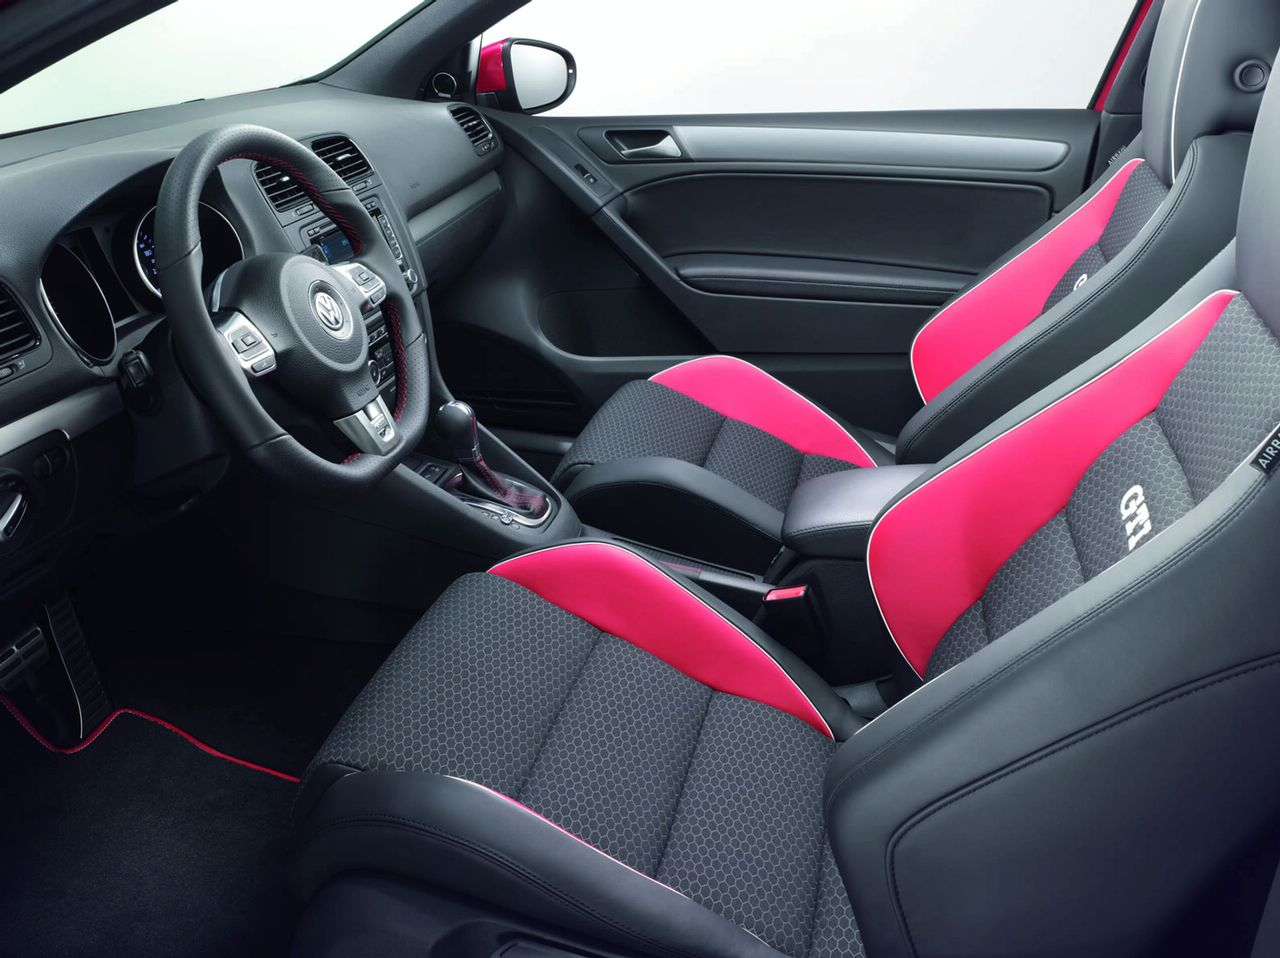 Vw Golf Concept Gti Interior Vw Tuning Mag